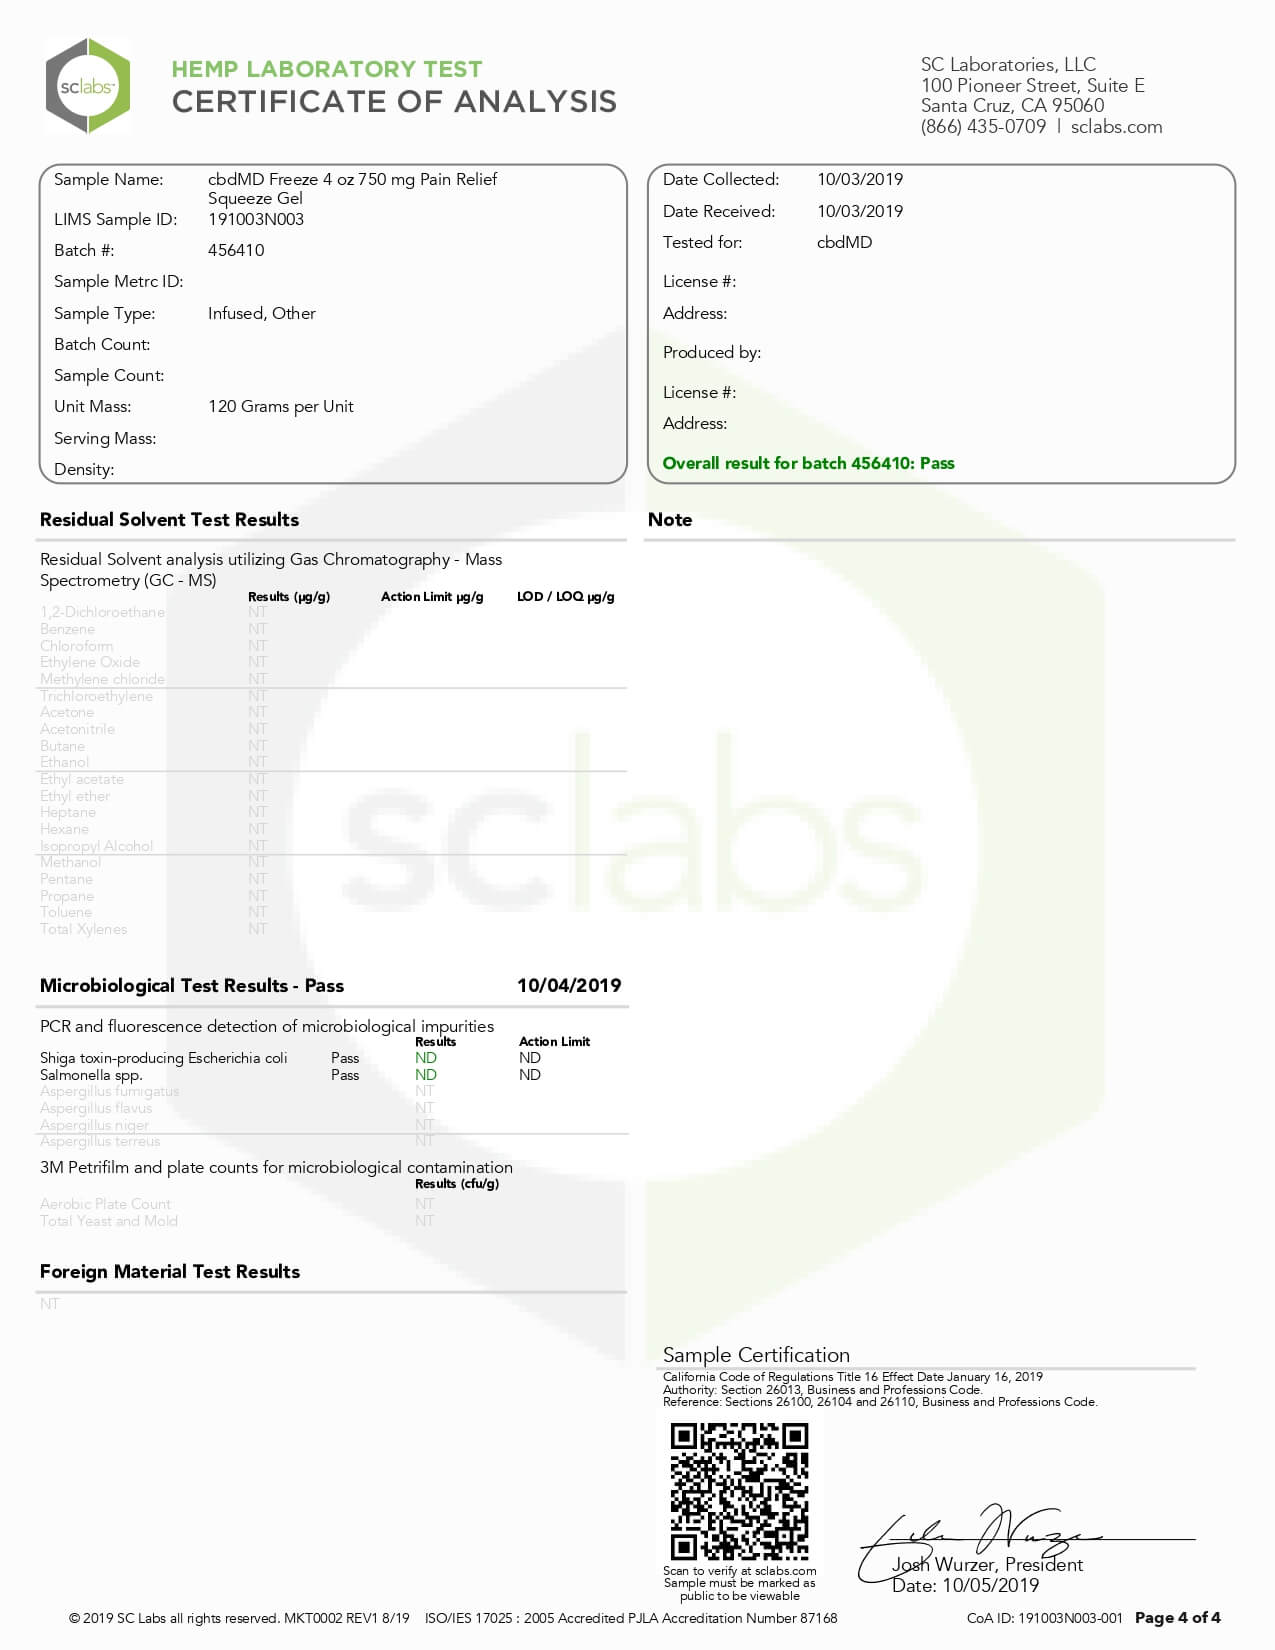 cbdMD CBD Topical Freeze Cold Therapy 4oz 750mg Lab Report